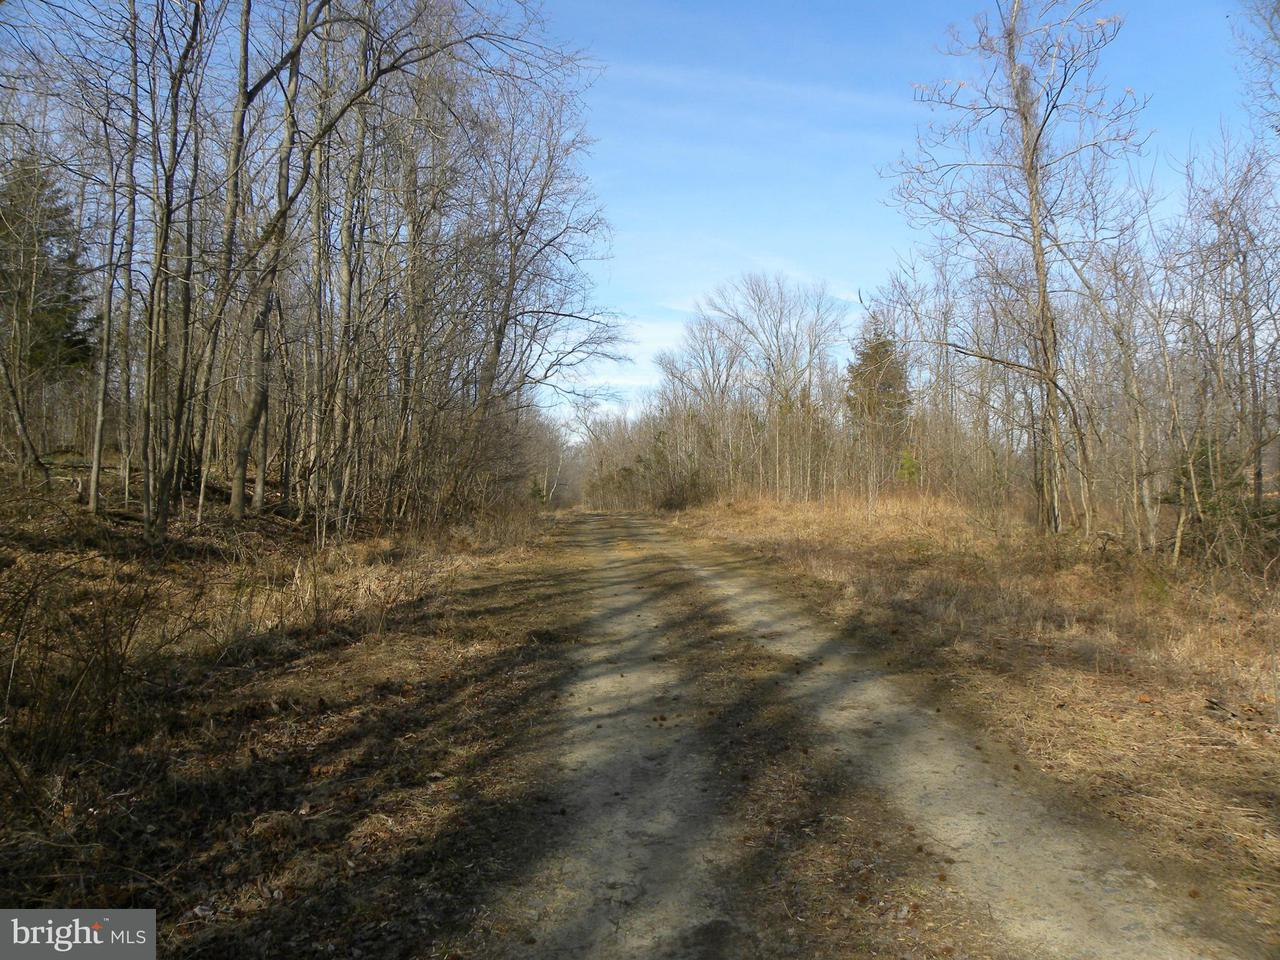 Land for Sale at NOT ON FILE NOT ON FILE King George, Virginia 22485 United States